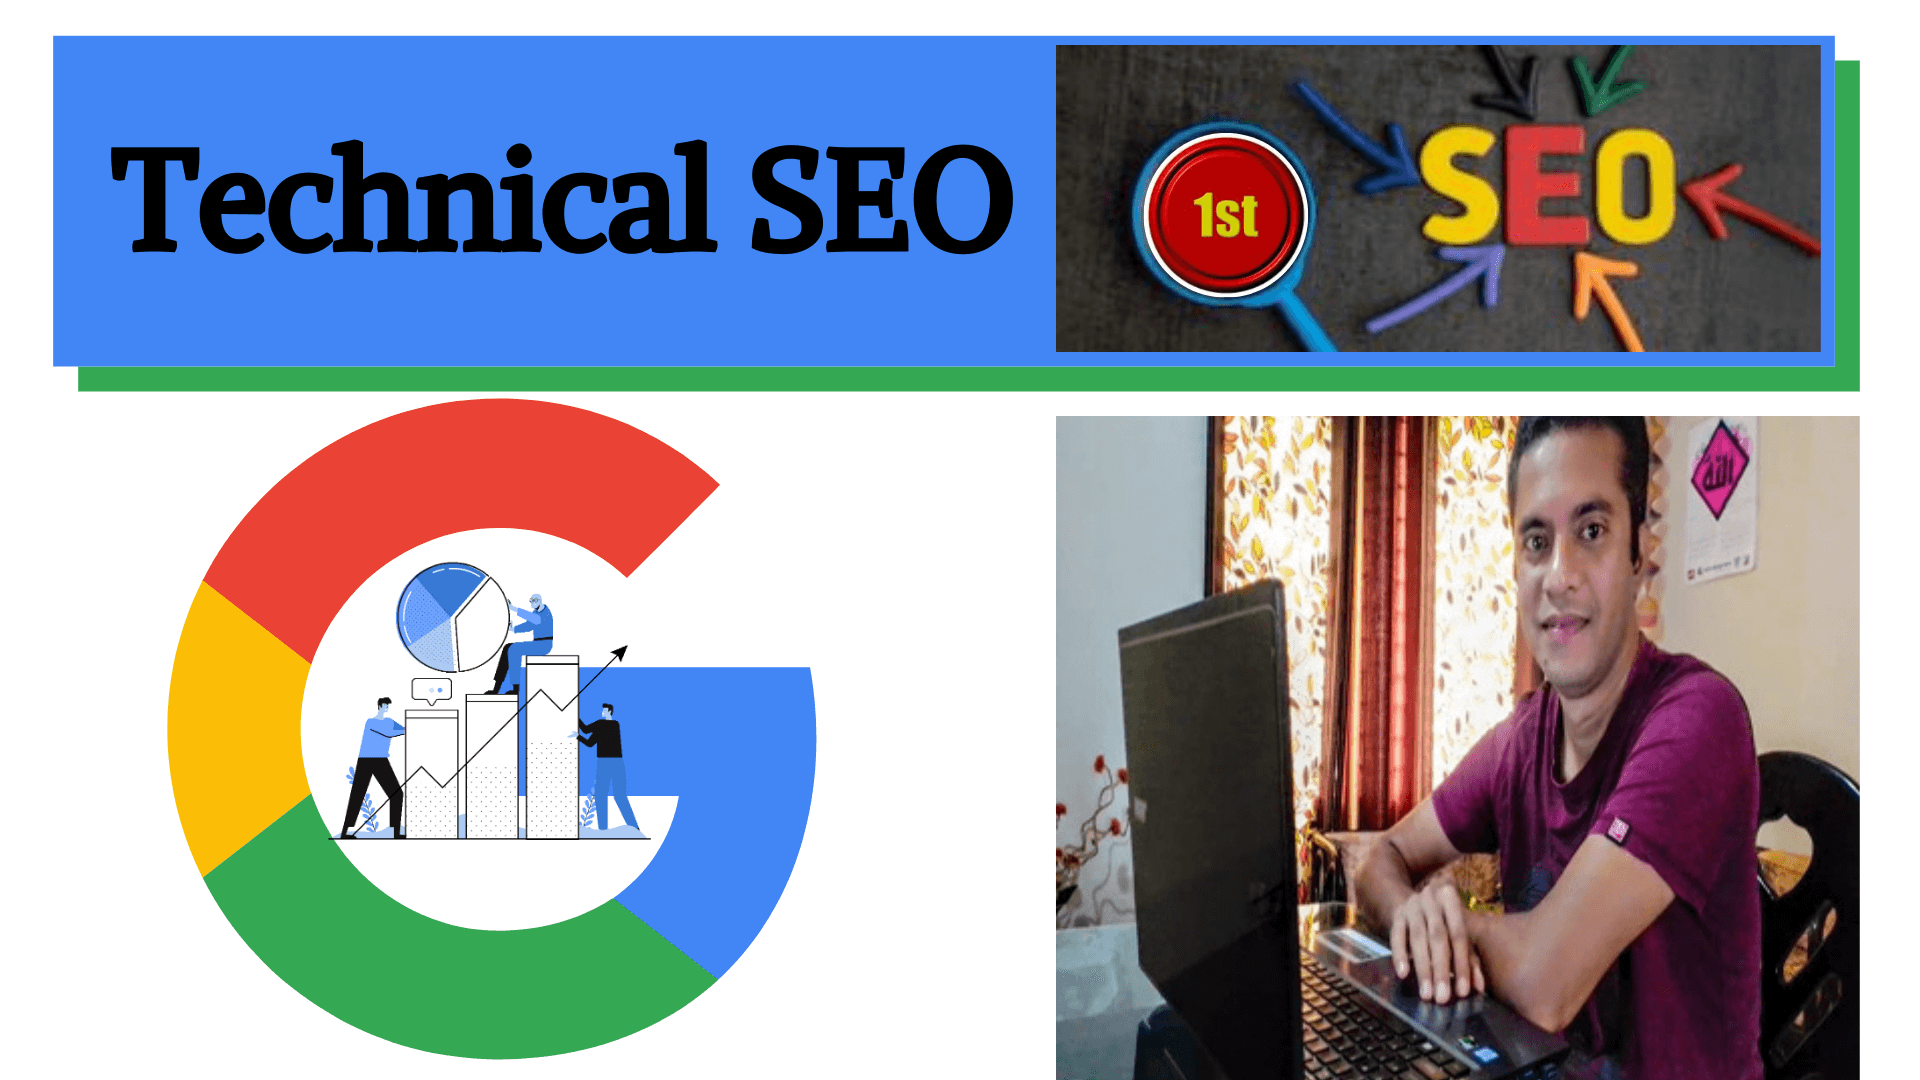 Professional Technical SEO for Google Ranking in 2021